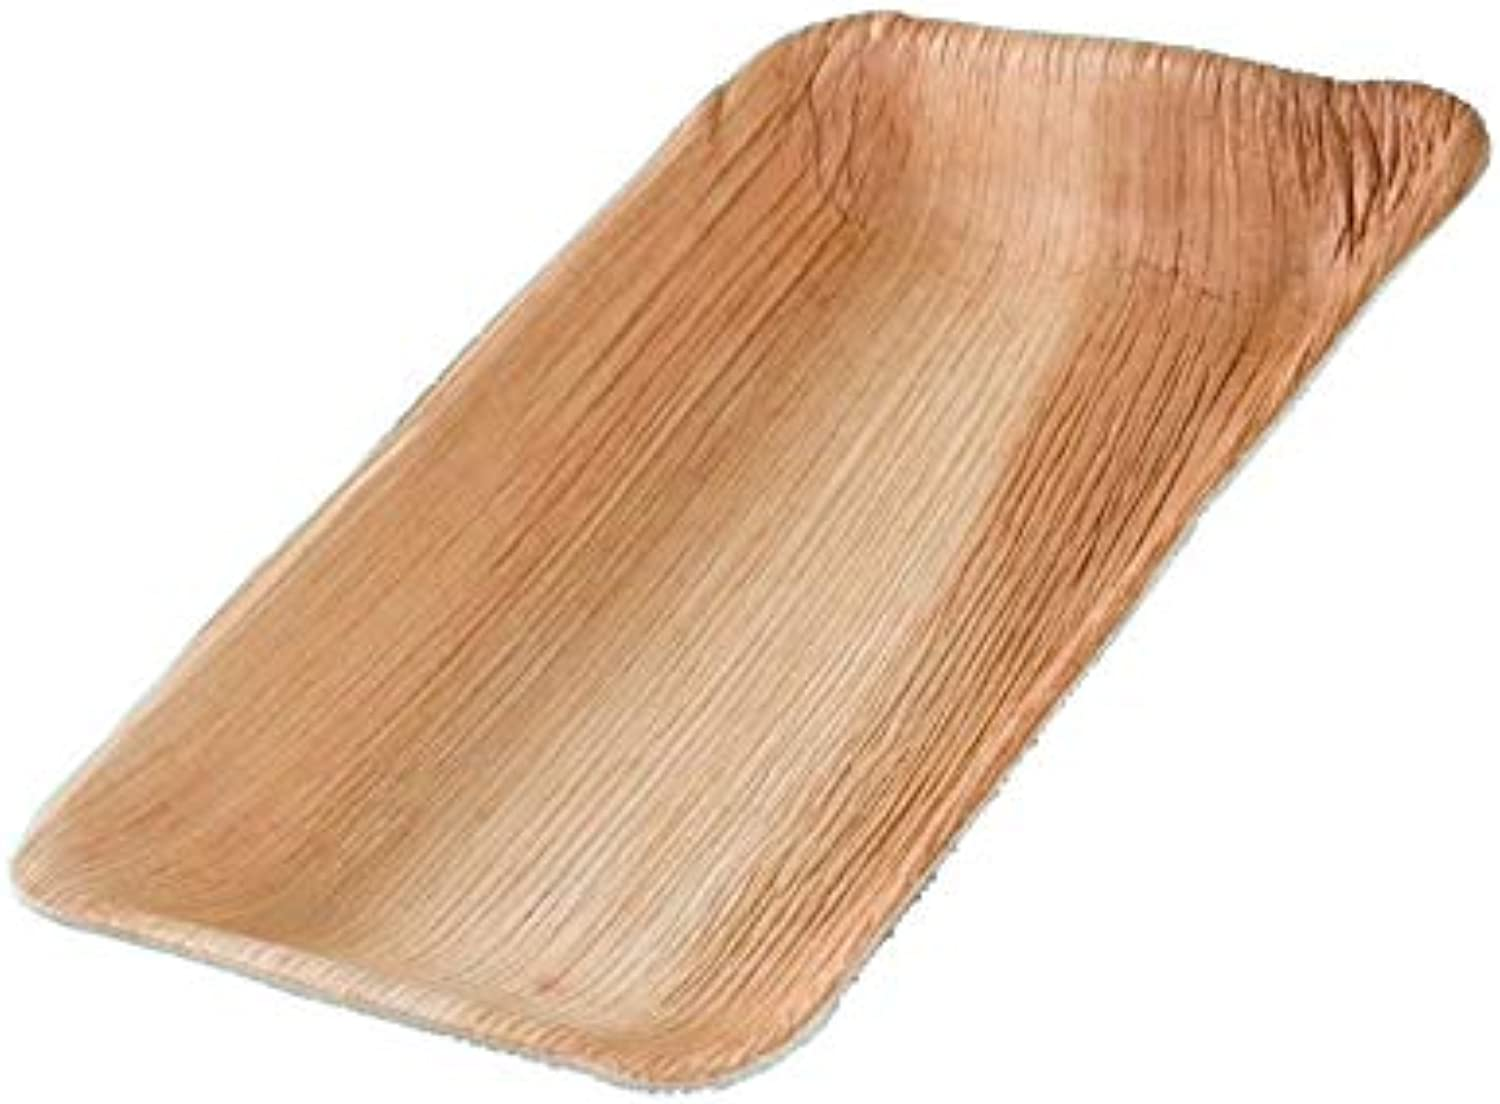 Pro DP 200 Organic Palm Leaf Plates Palm Leaves Finger Food Snack Plate Party Plates Square 25 x 15 cm 25 mm Deep (incl. DSD Fee)